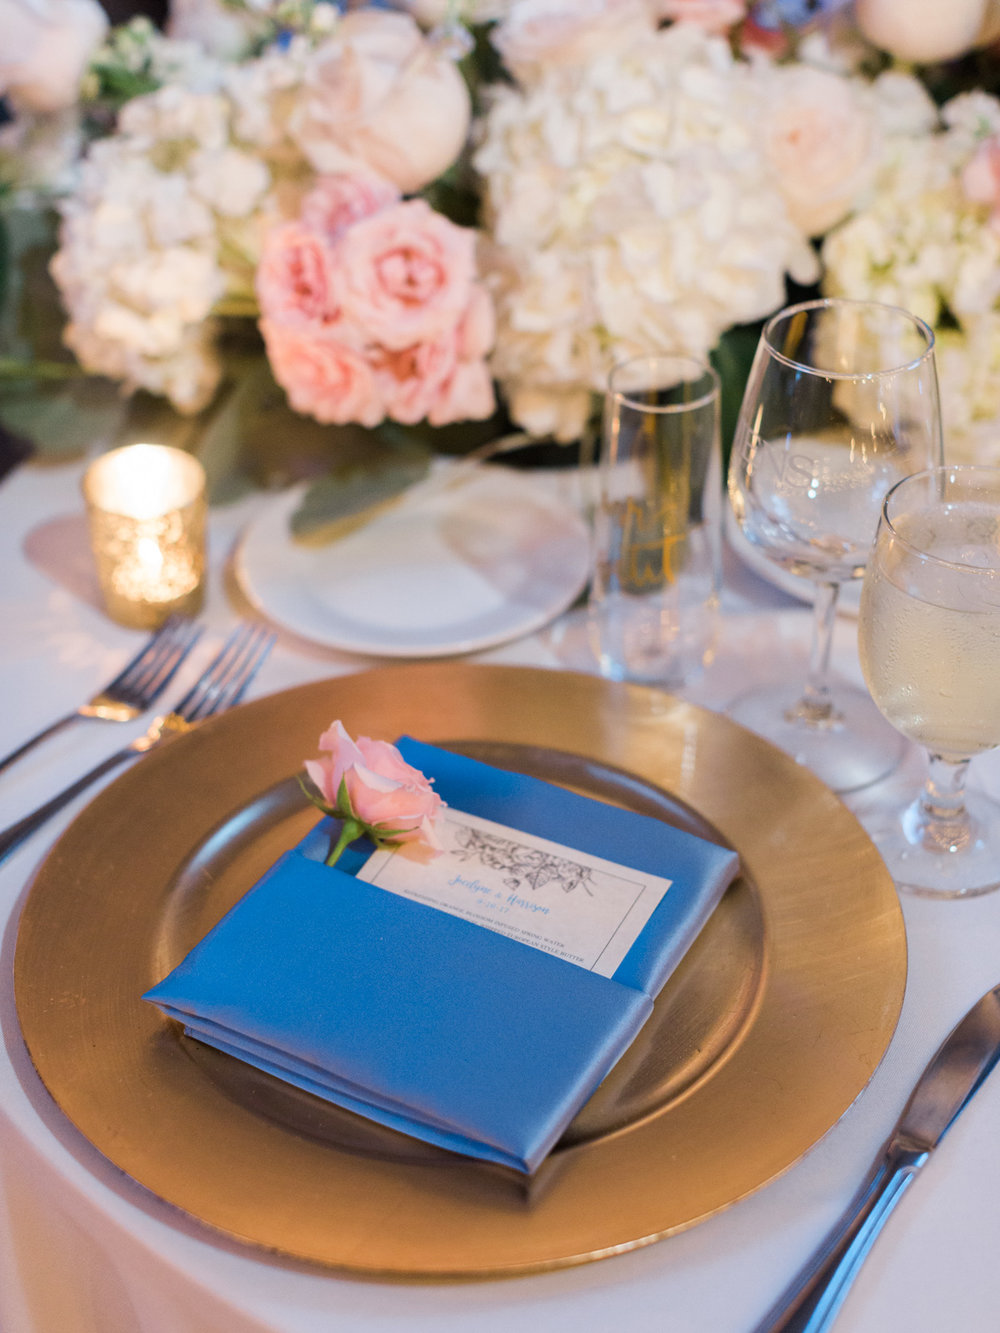 Blue and blush sweetheart table | Harrison & Jocelyne's gorgeous Temecula wedding day at Wiens Family Cellars captured by Temecula wedding photographers Betsy & John